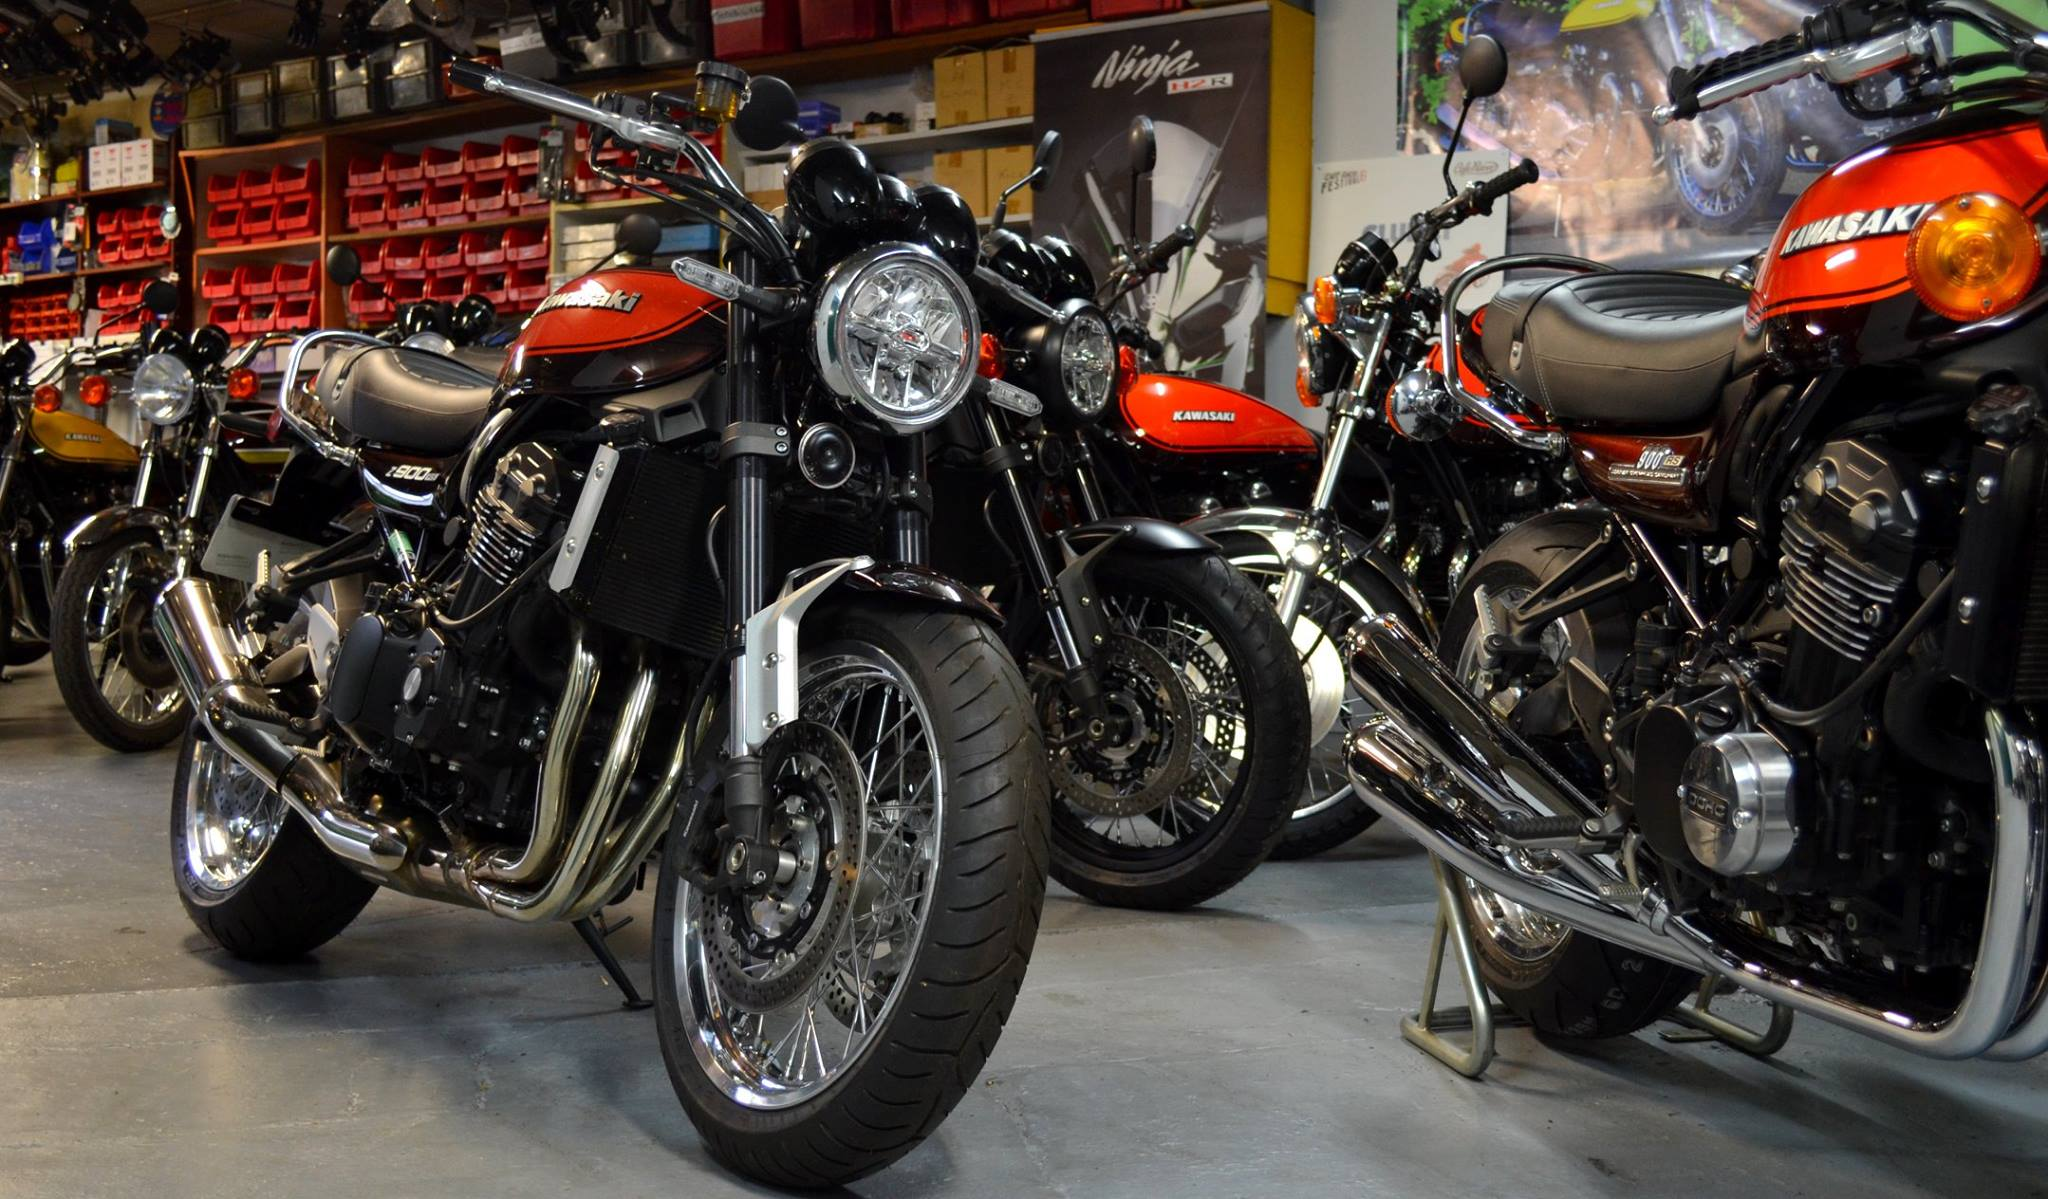 Z900 RS Classic #3 000